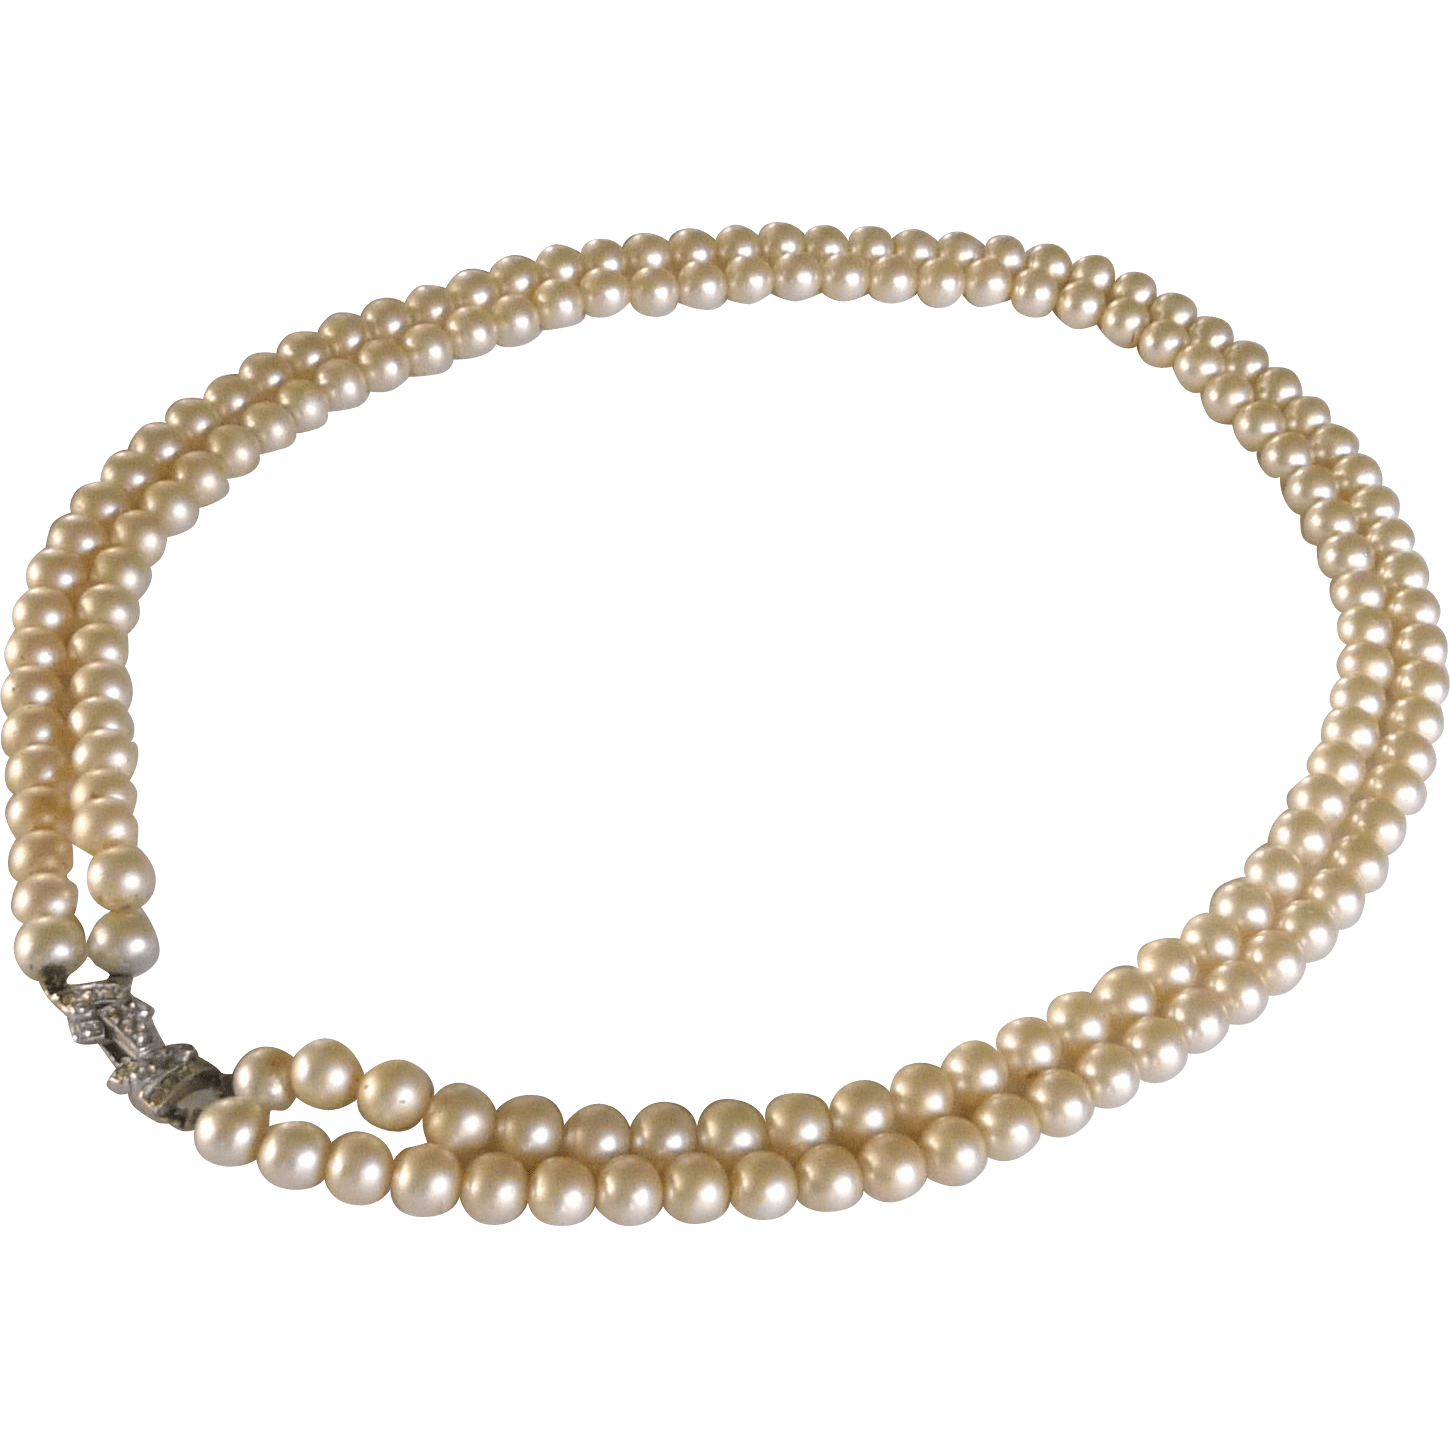 Make And Sell Jewelry Home